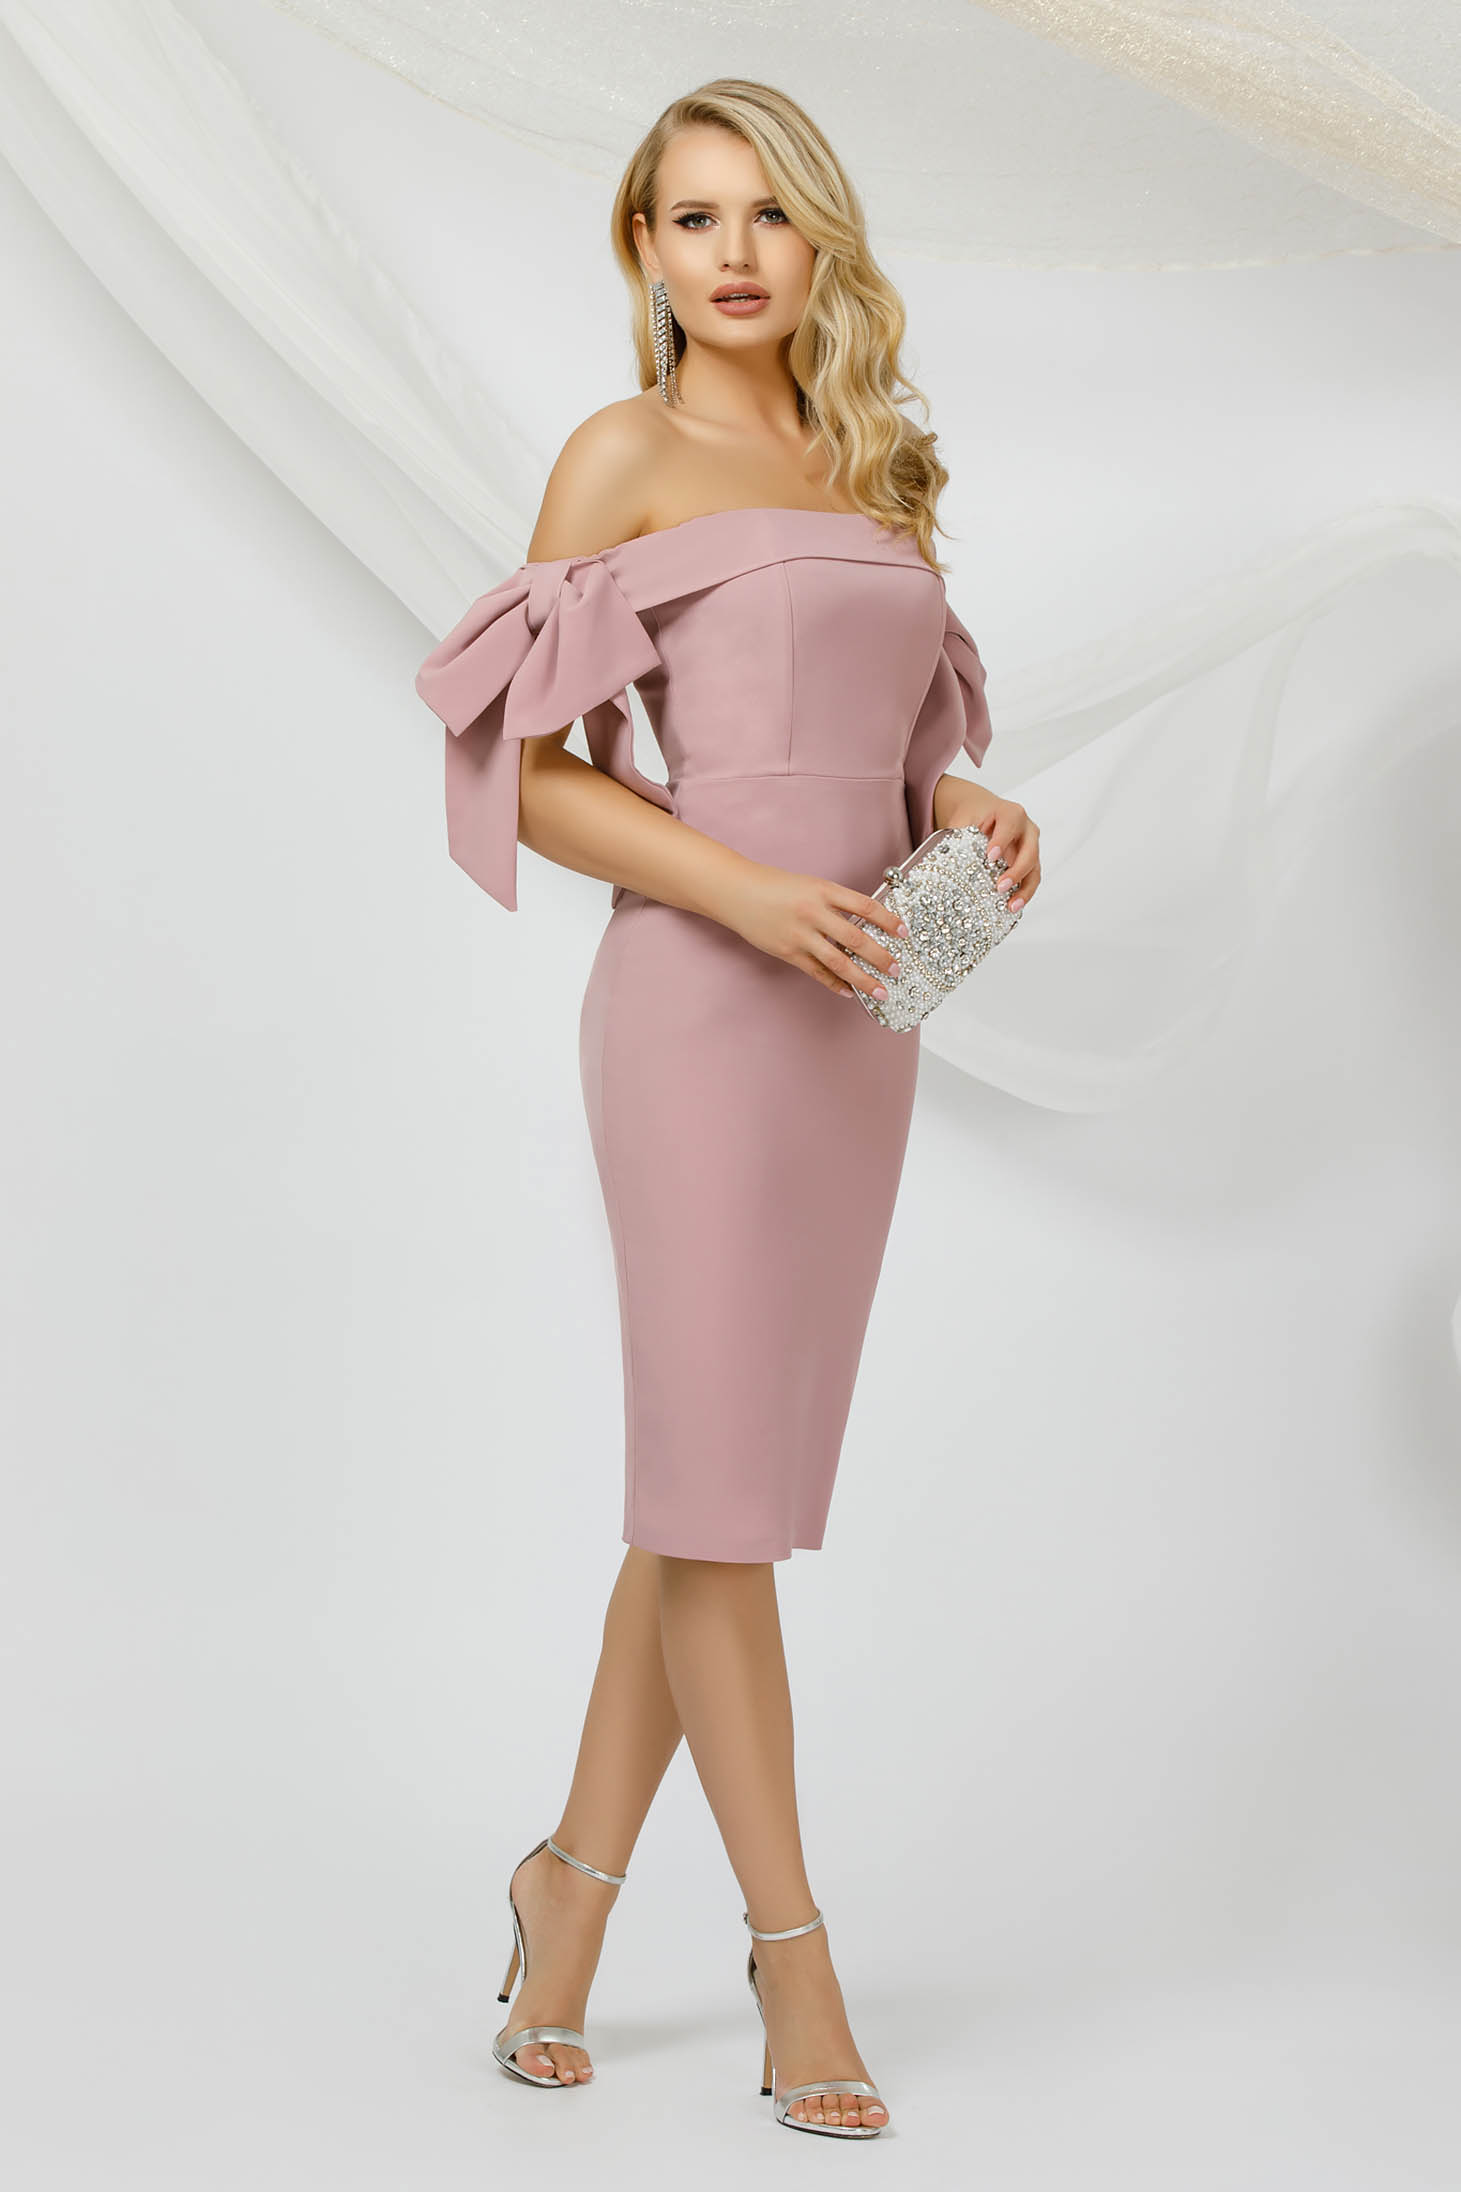 Lightpink dress pencil thin fabric occasional naked shoulders with bow accessories